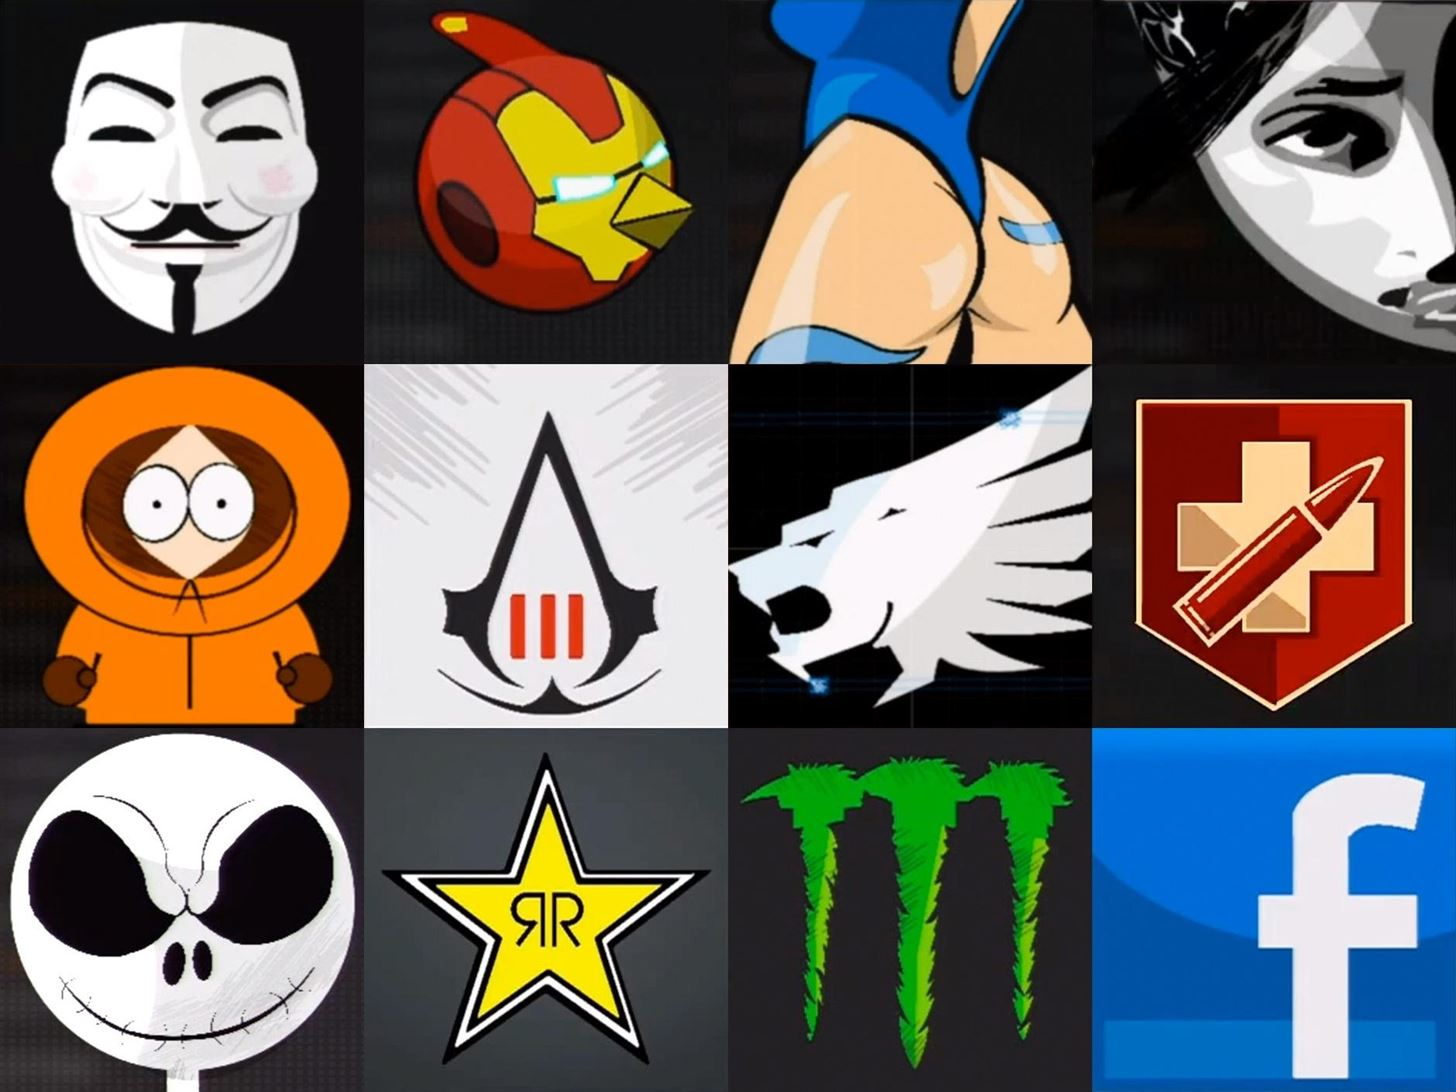 12 more totally kickass emblem designs for call of duty